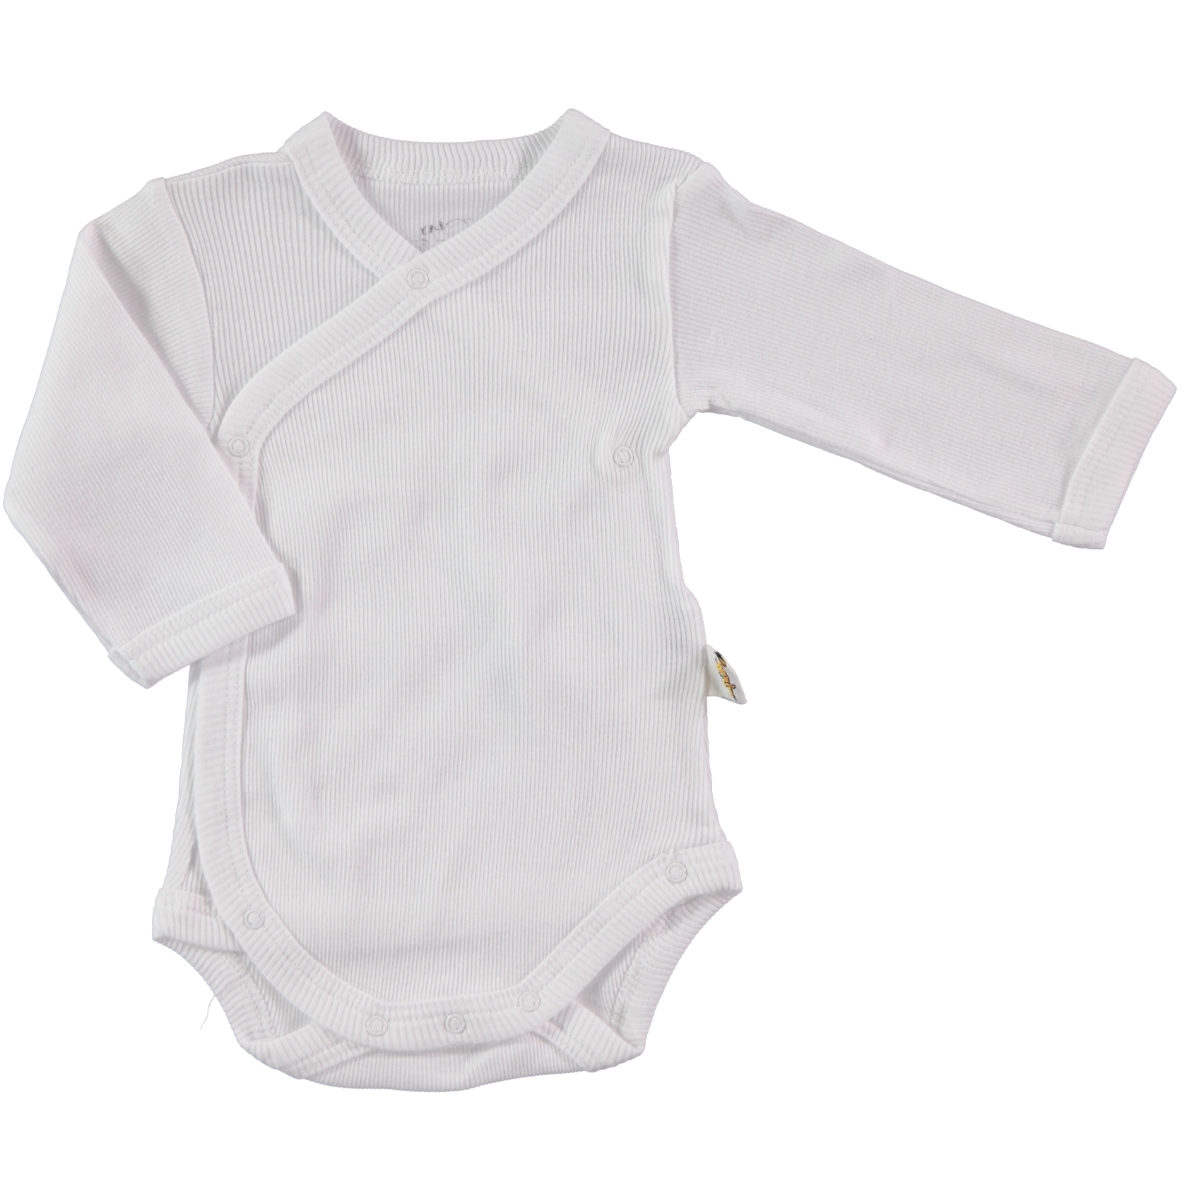 Minidamla Baby 0-6 Months White Shirt With Snaps